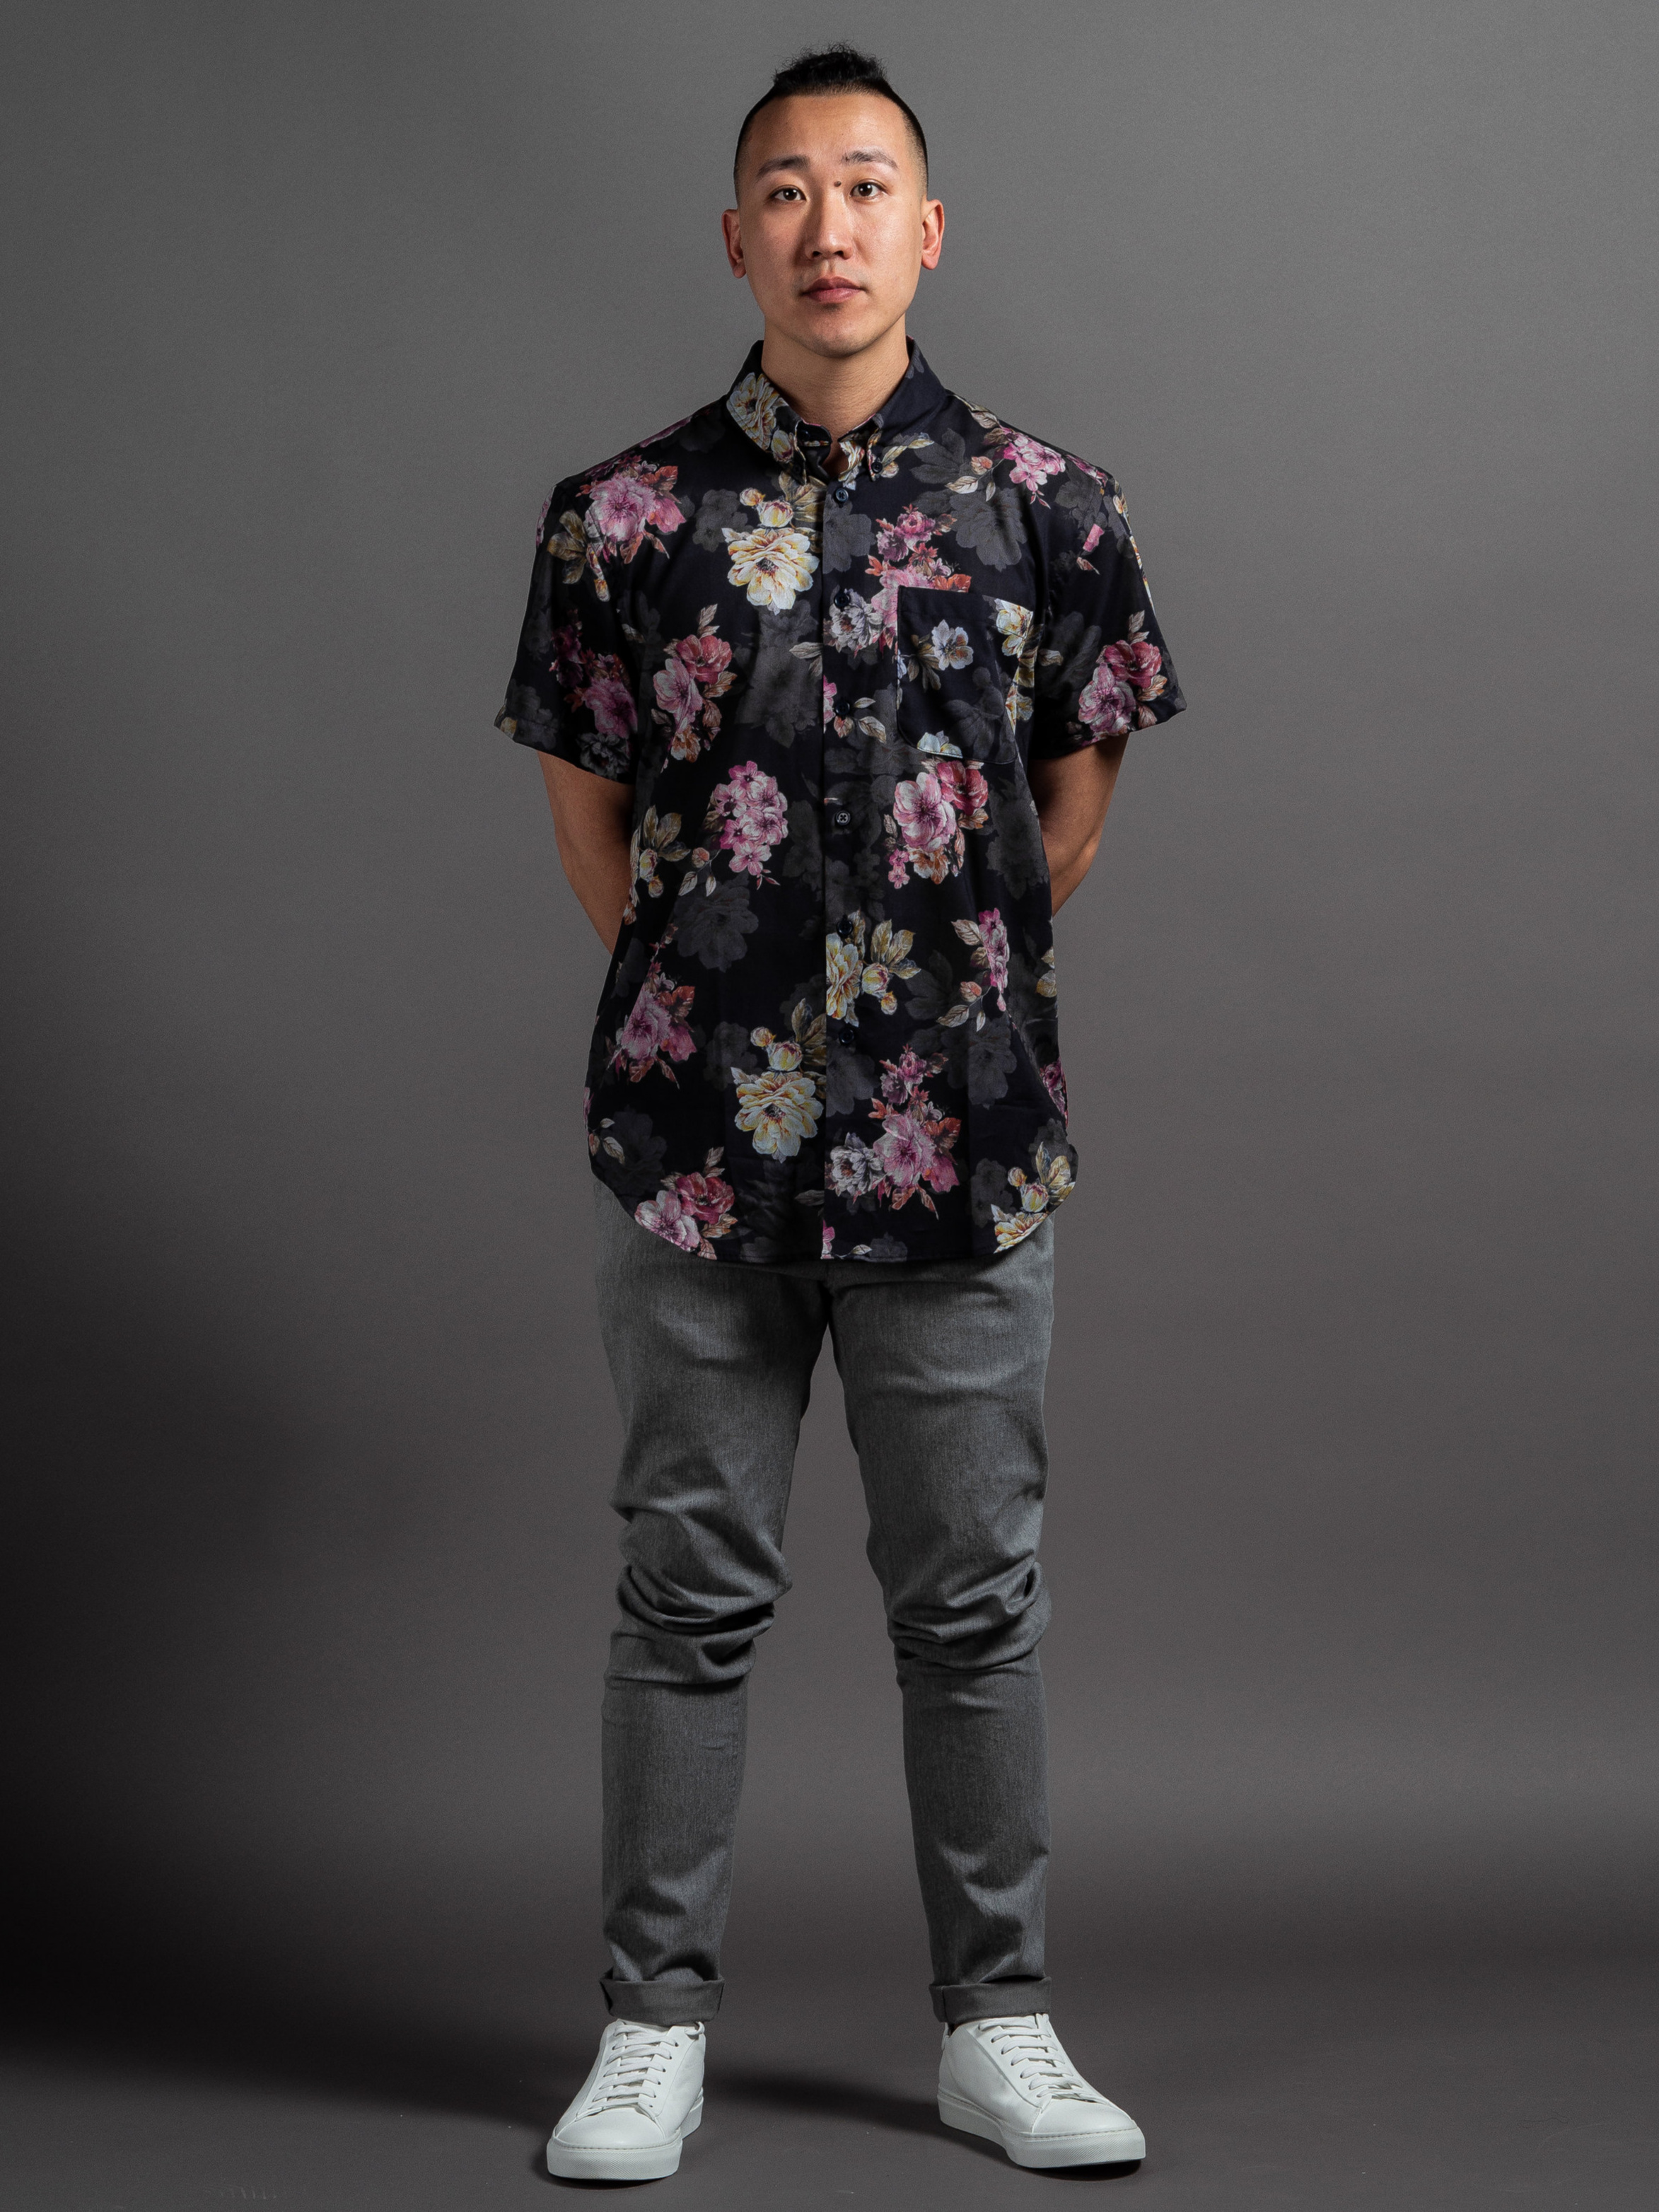 Naked & Famous Flower Painting Shirt  Outclass Stretch Chinos  Wings + Horns White Court Sneakers    SHOP THIS LOOK